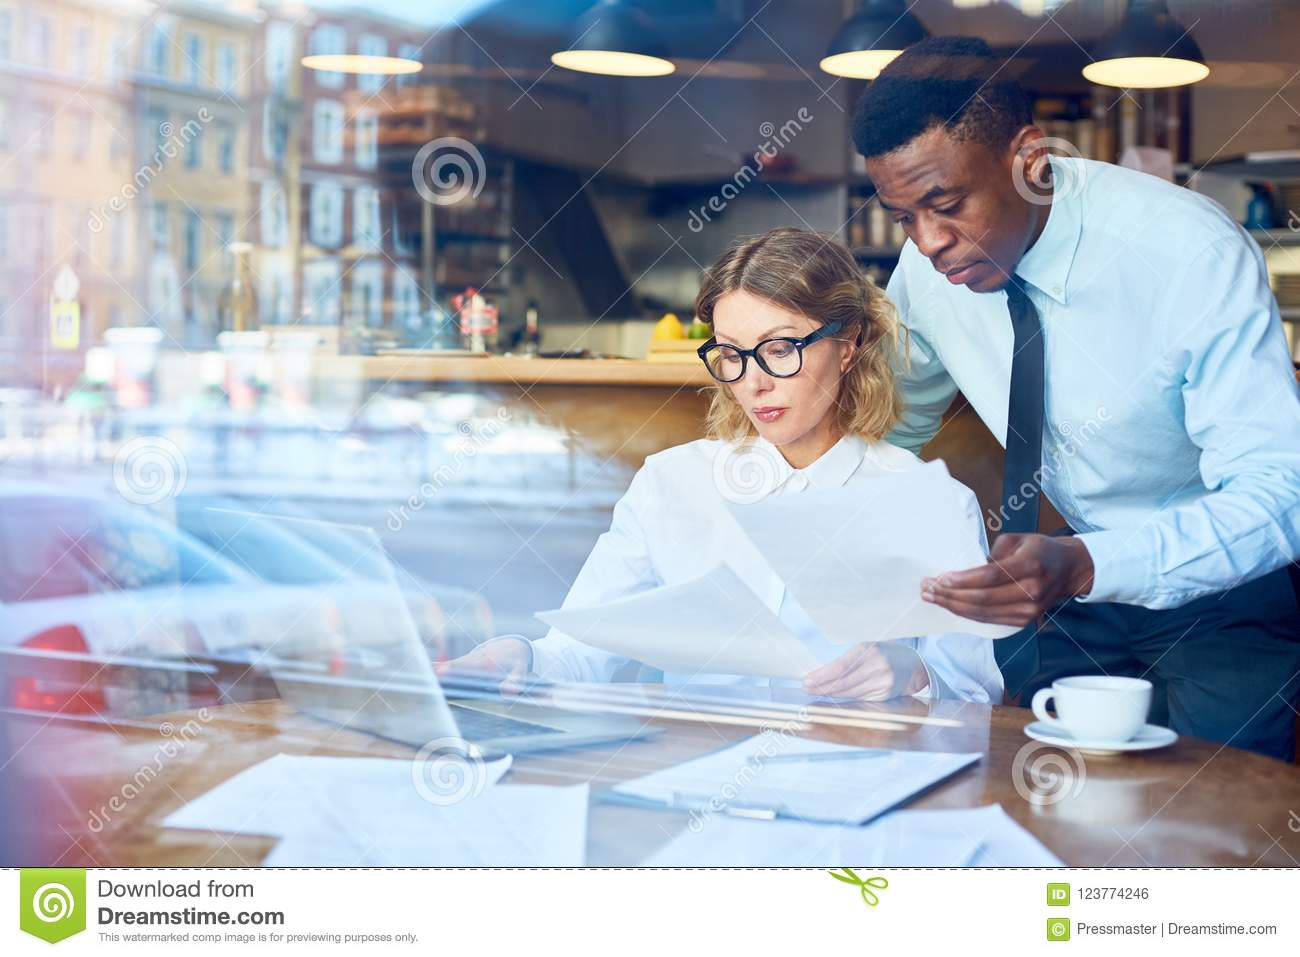 African-American Man Showing Paper To Colleague In Cafe